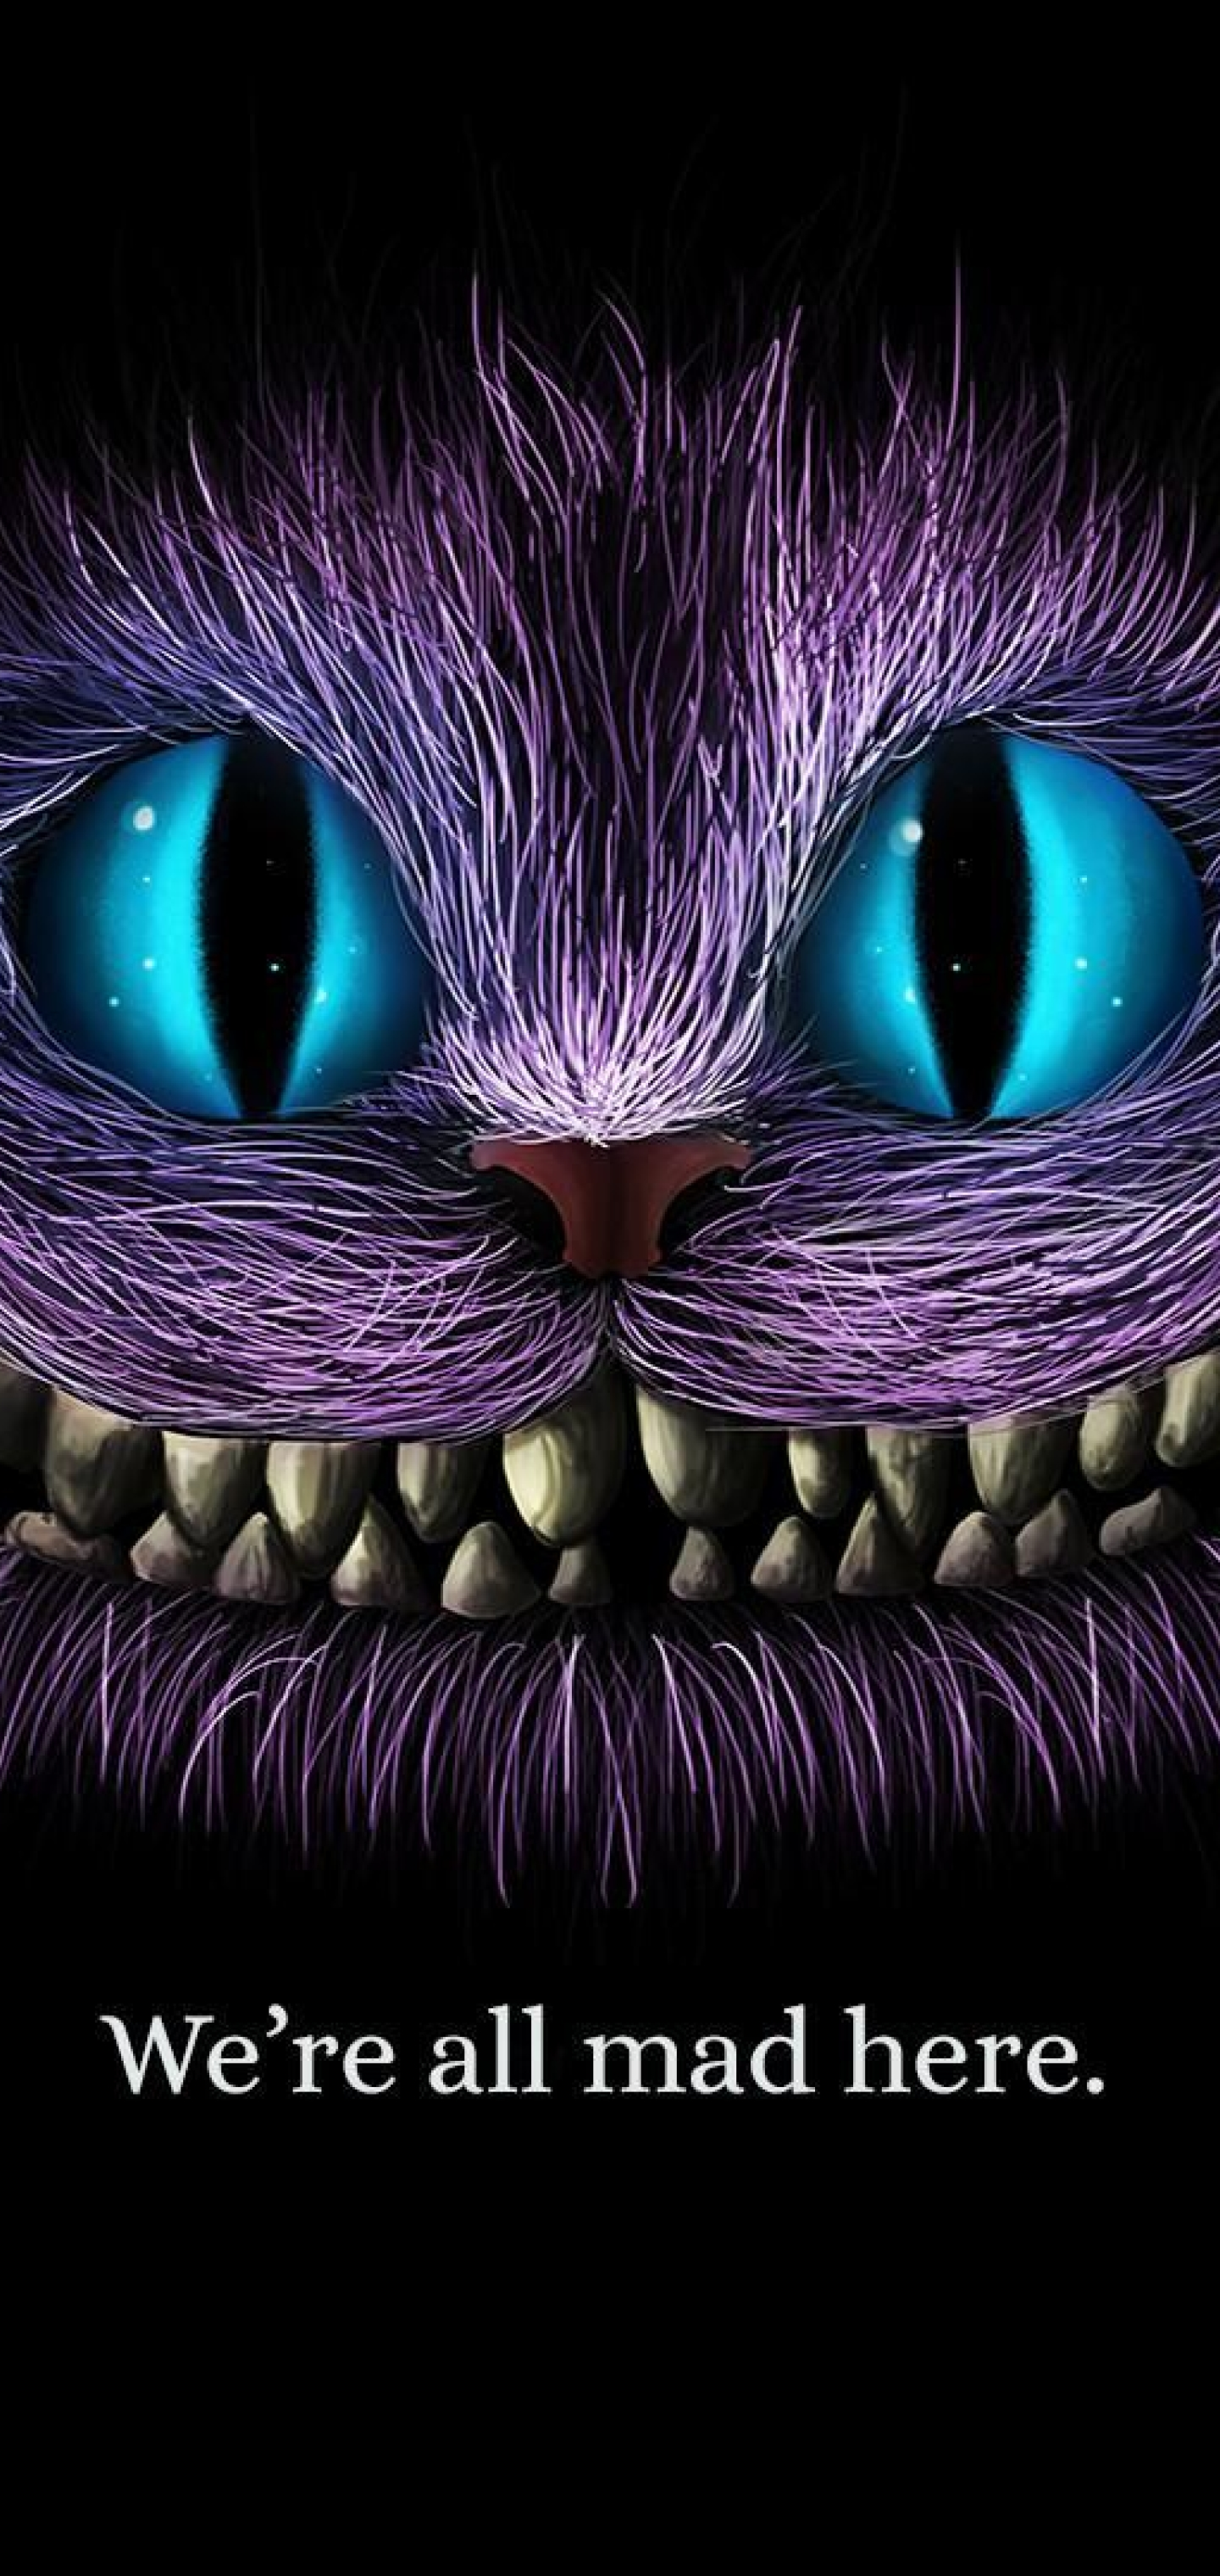 1440x3040 We Are All Mad Here Cheshire Cat 1440x3040 Resolution